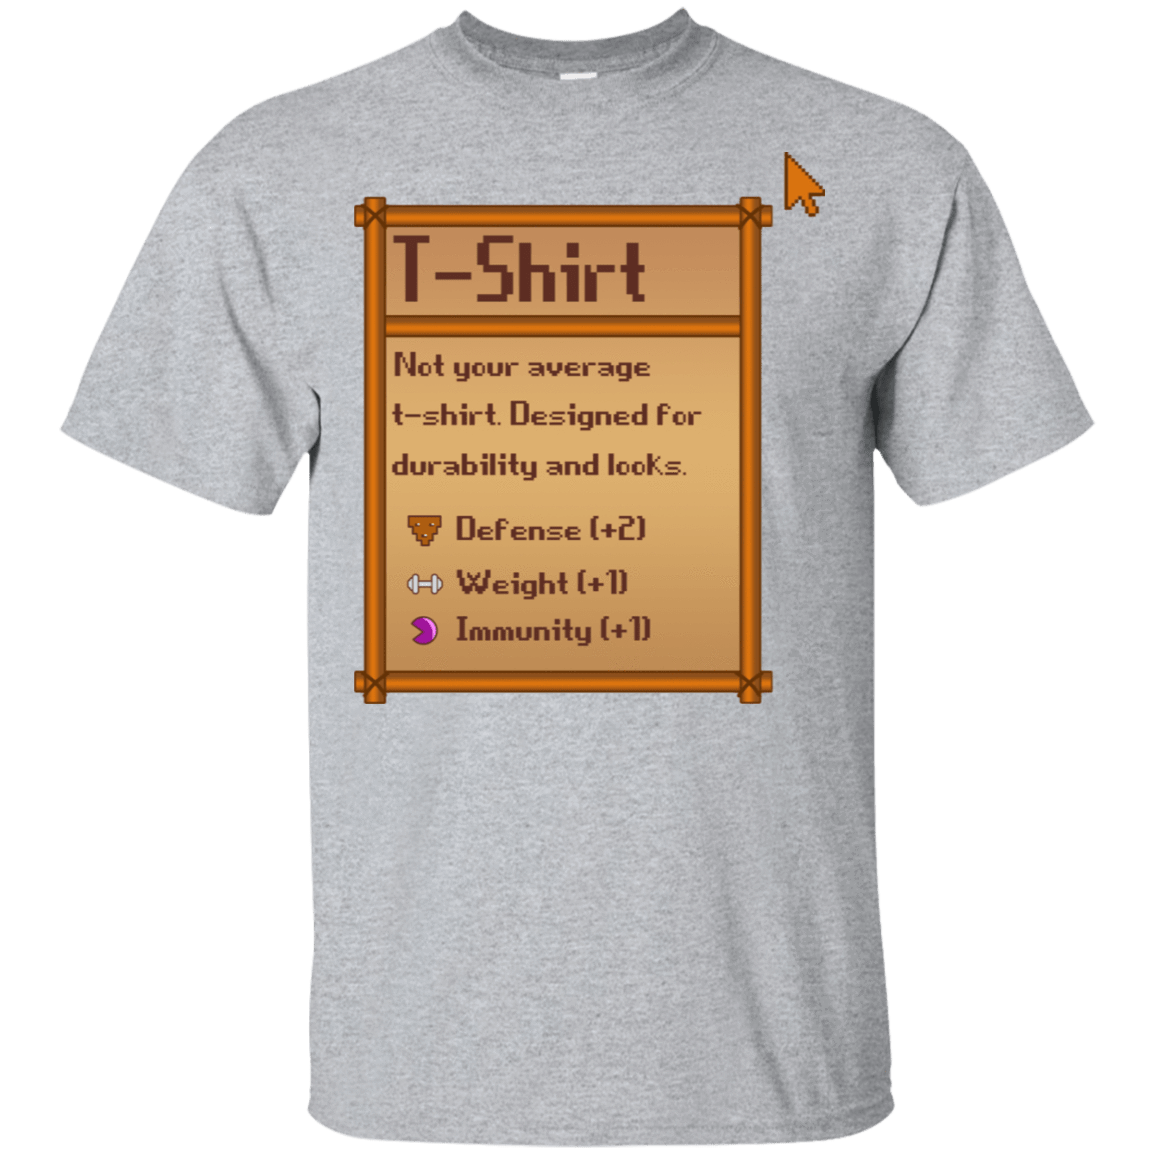 Stardew Valley T-Shirt 22-115-72955963-254 - Tee Ript